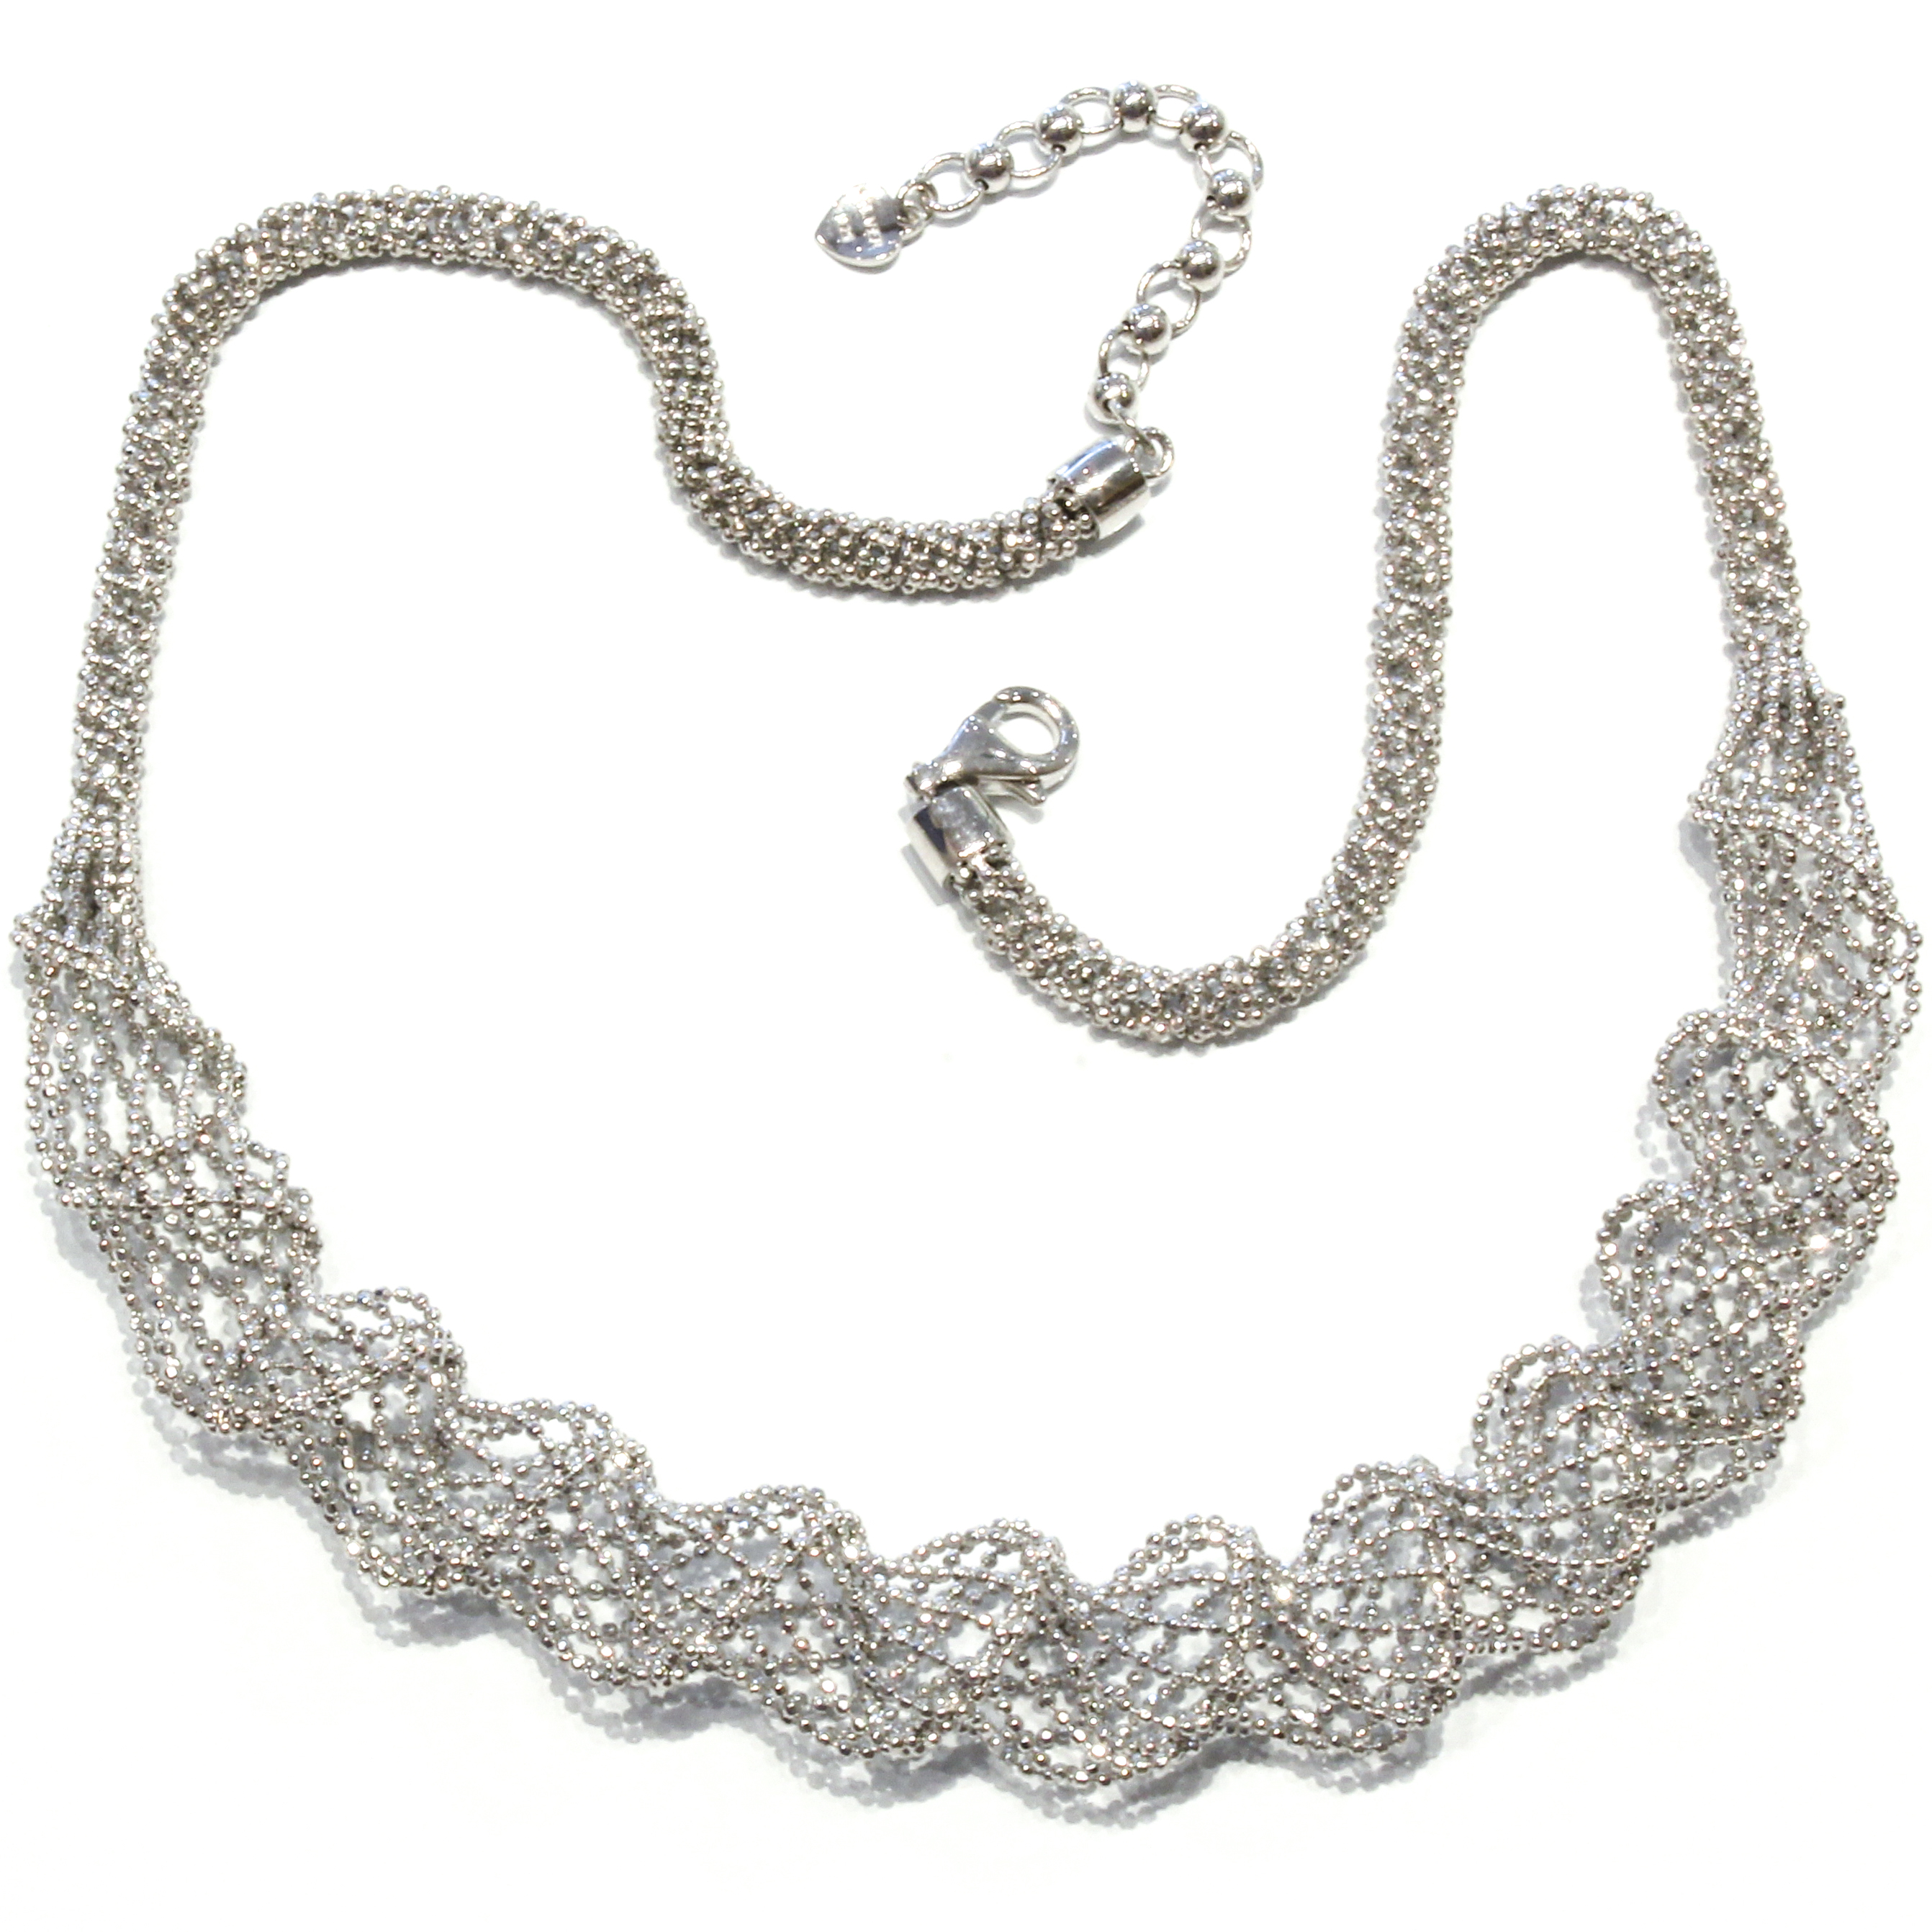 Unique Silver Mesh Necklace